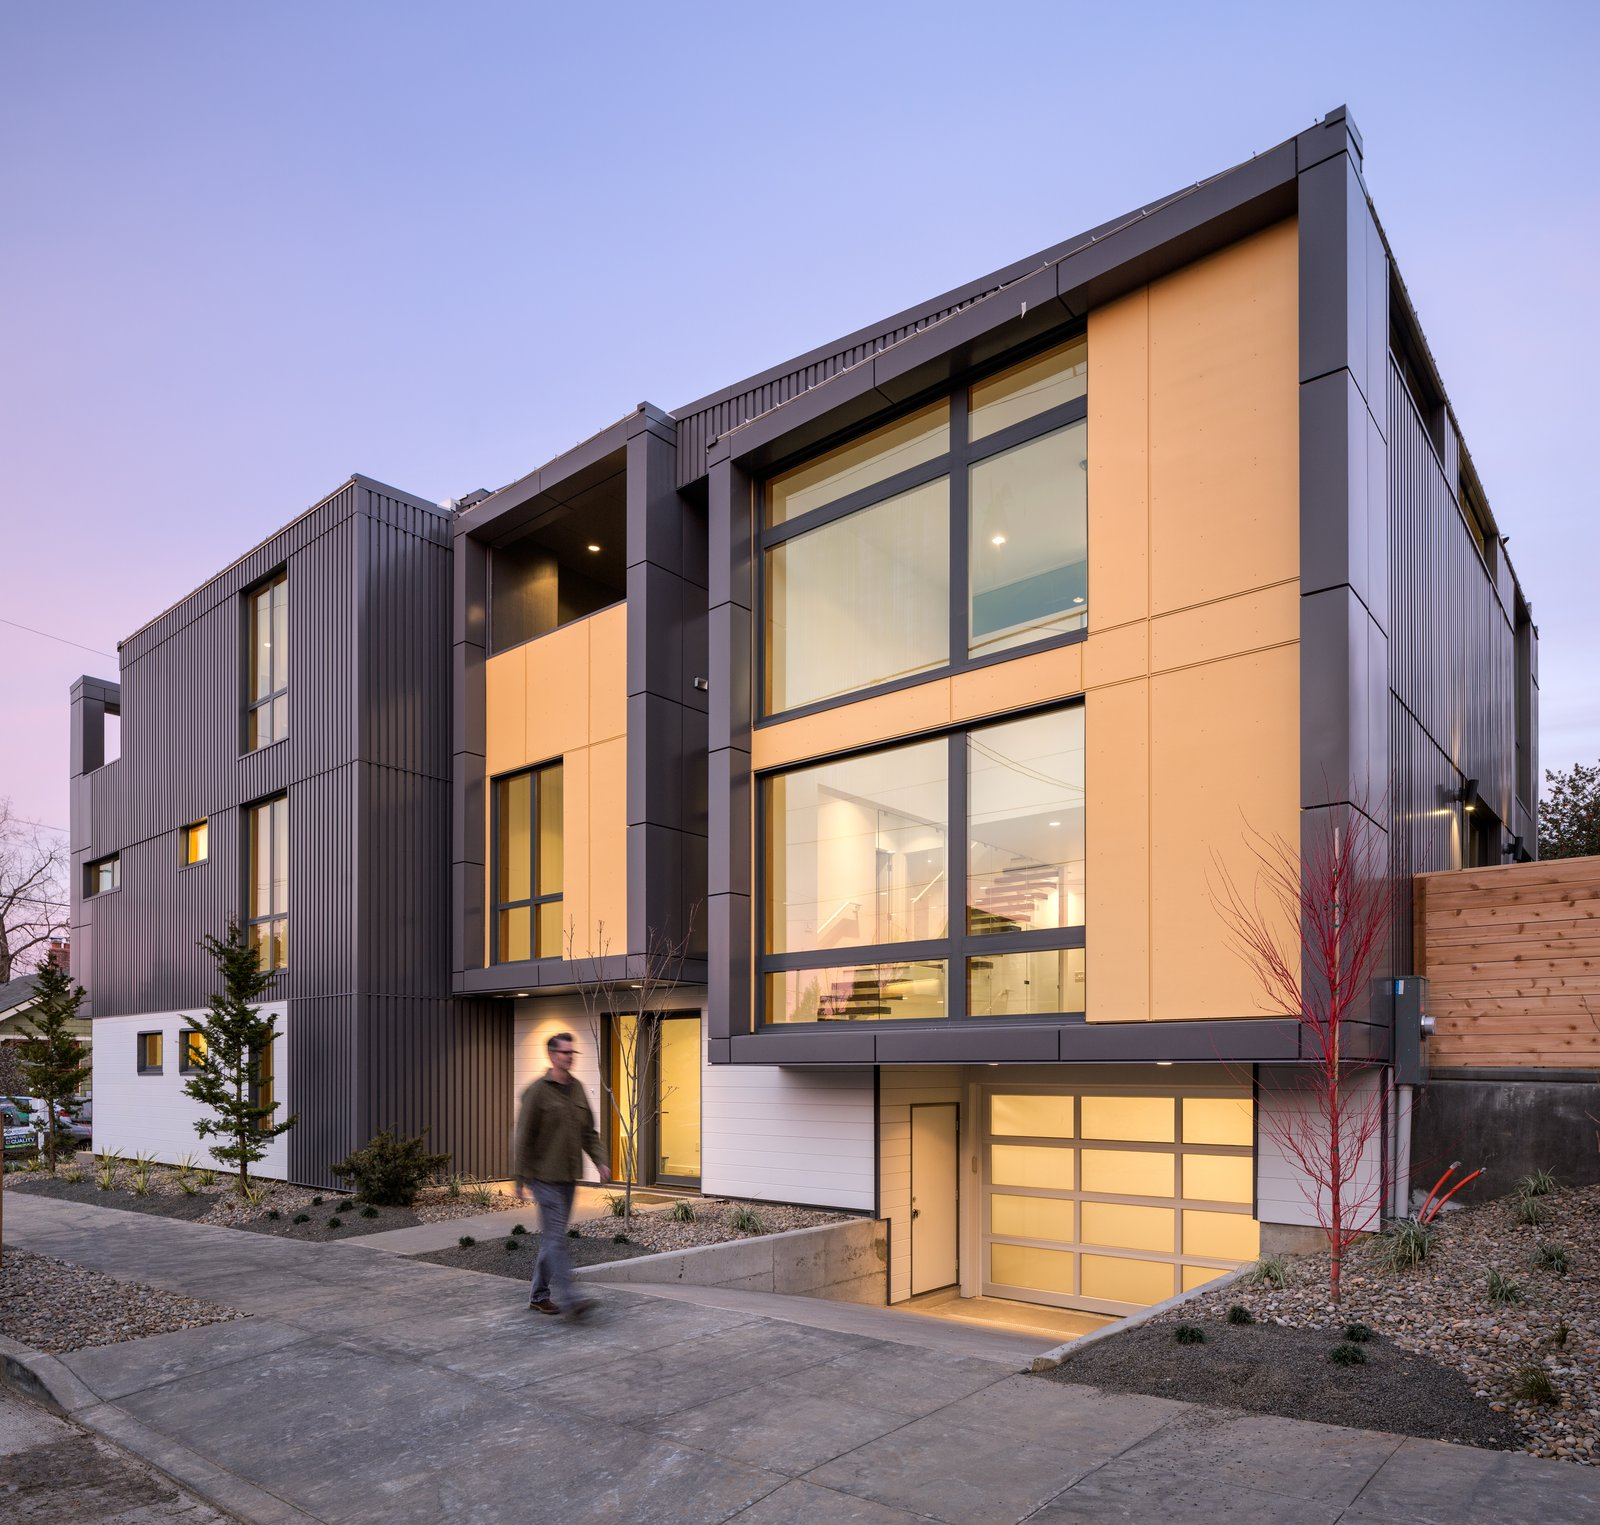 Exterior, Metal Siding Material, Shed RoofLine, House Building Type, Flat RoofLine, and Metal Roof Material The south unit exterior  Lightbox 23 by Steelhead Architecture